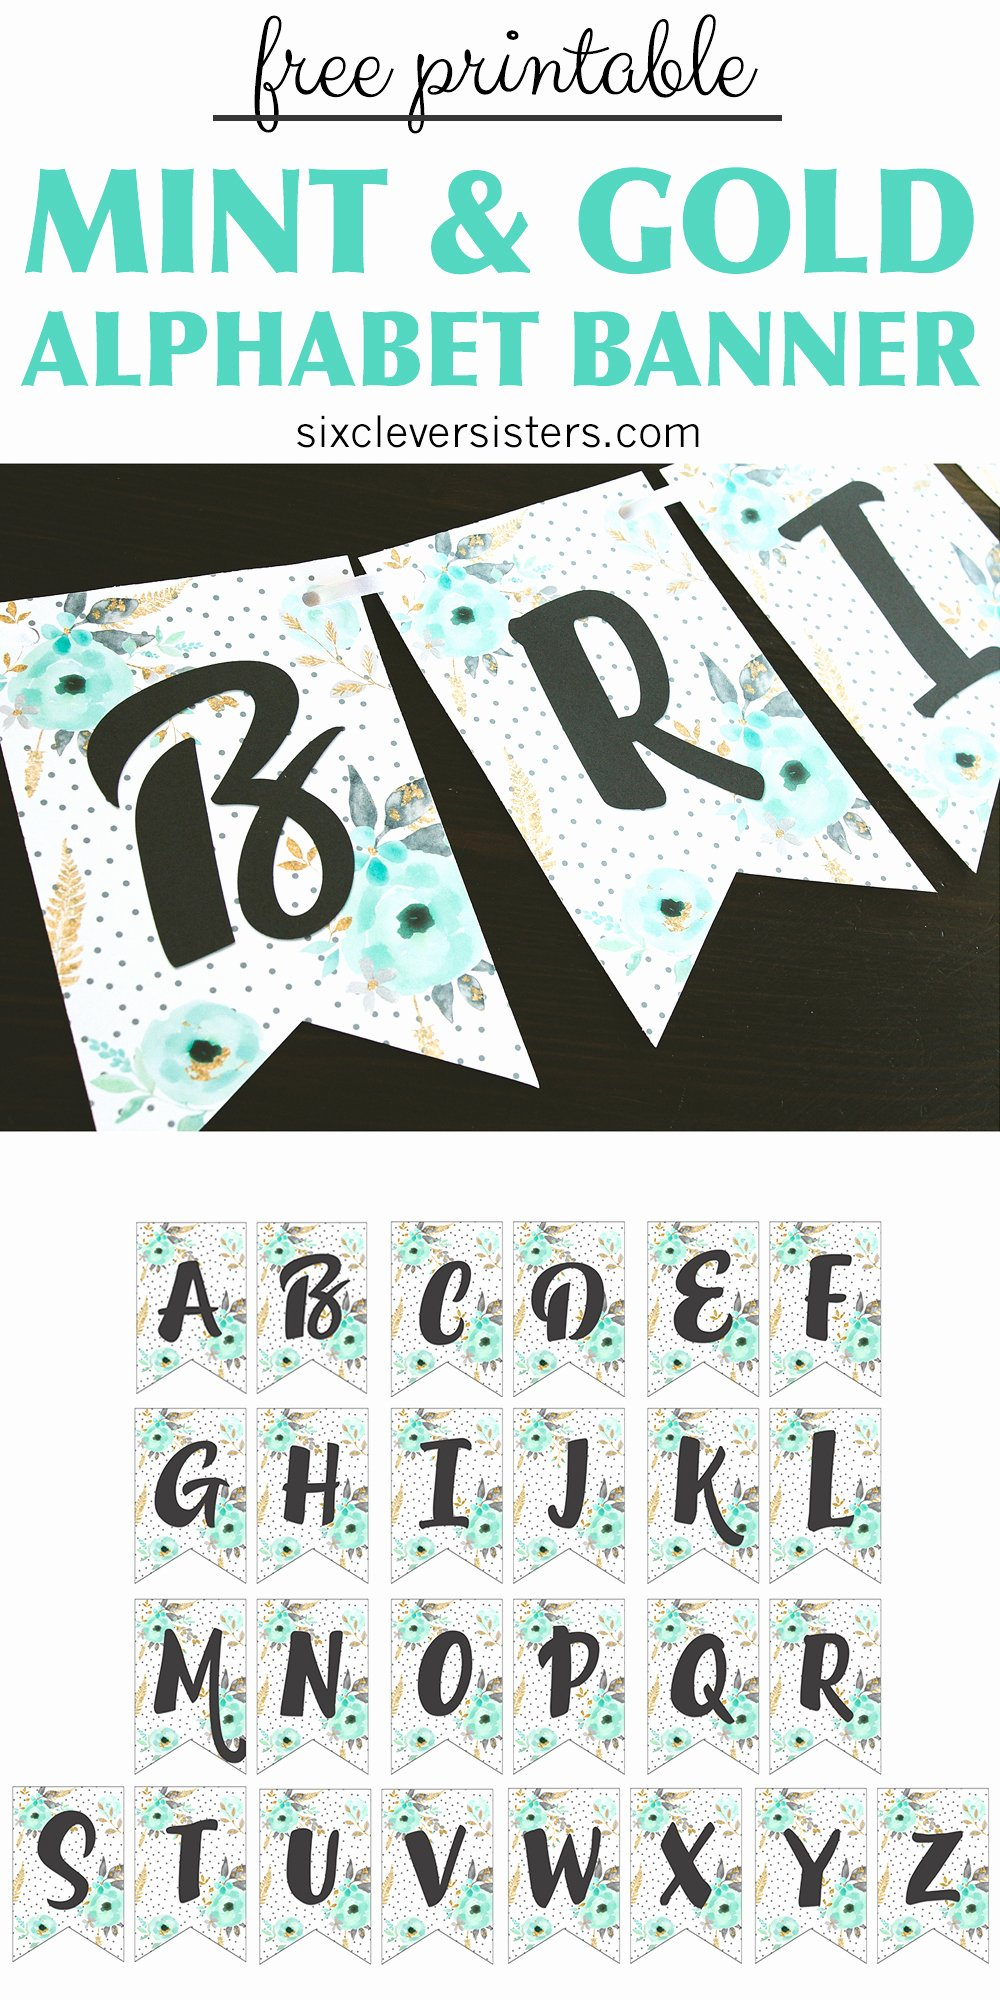 Printable Letter Banners Awesome Free Printable Alphabet Banner Mint& Gold Six Clever